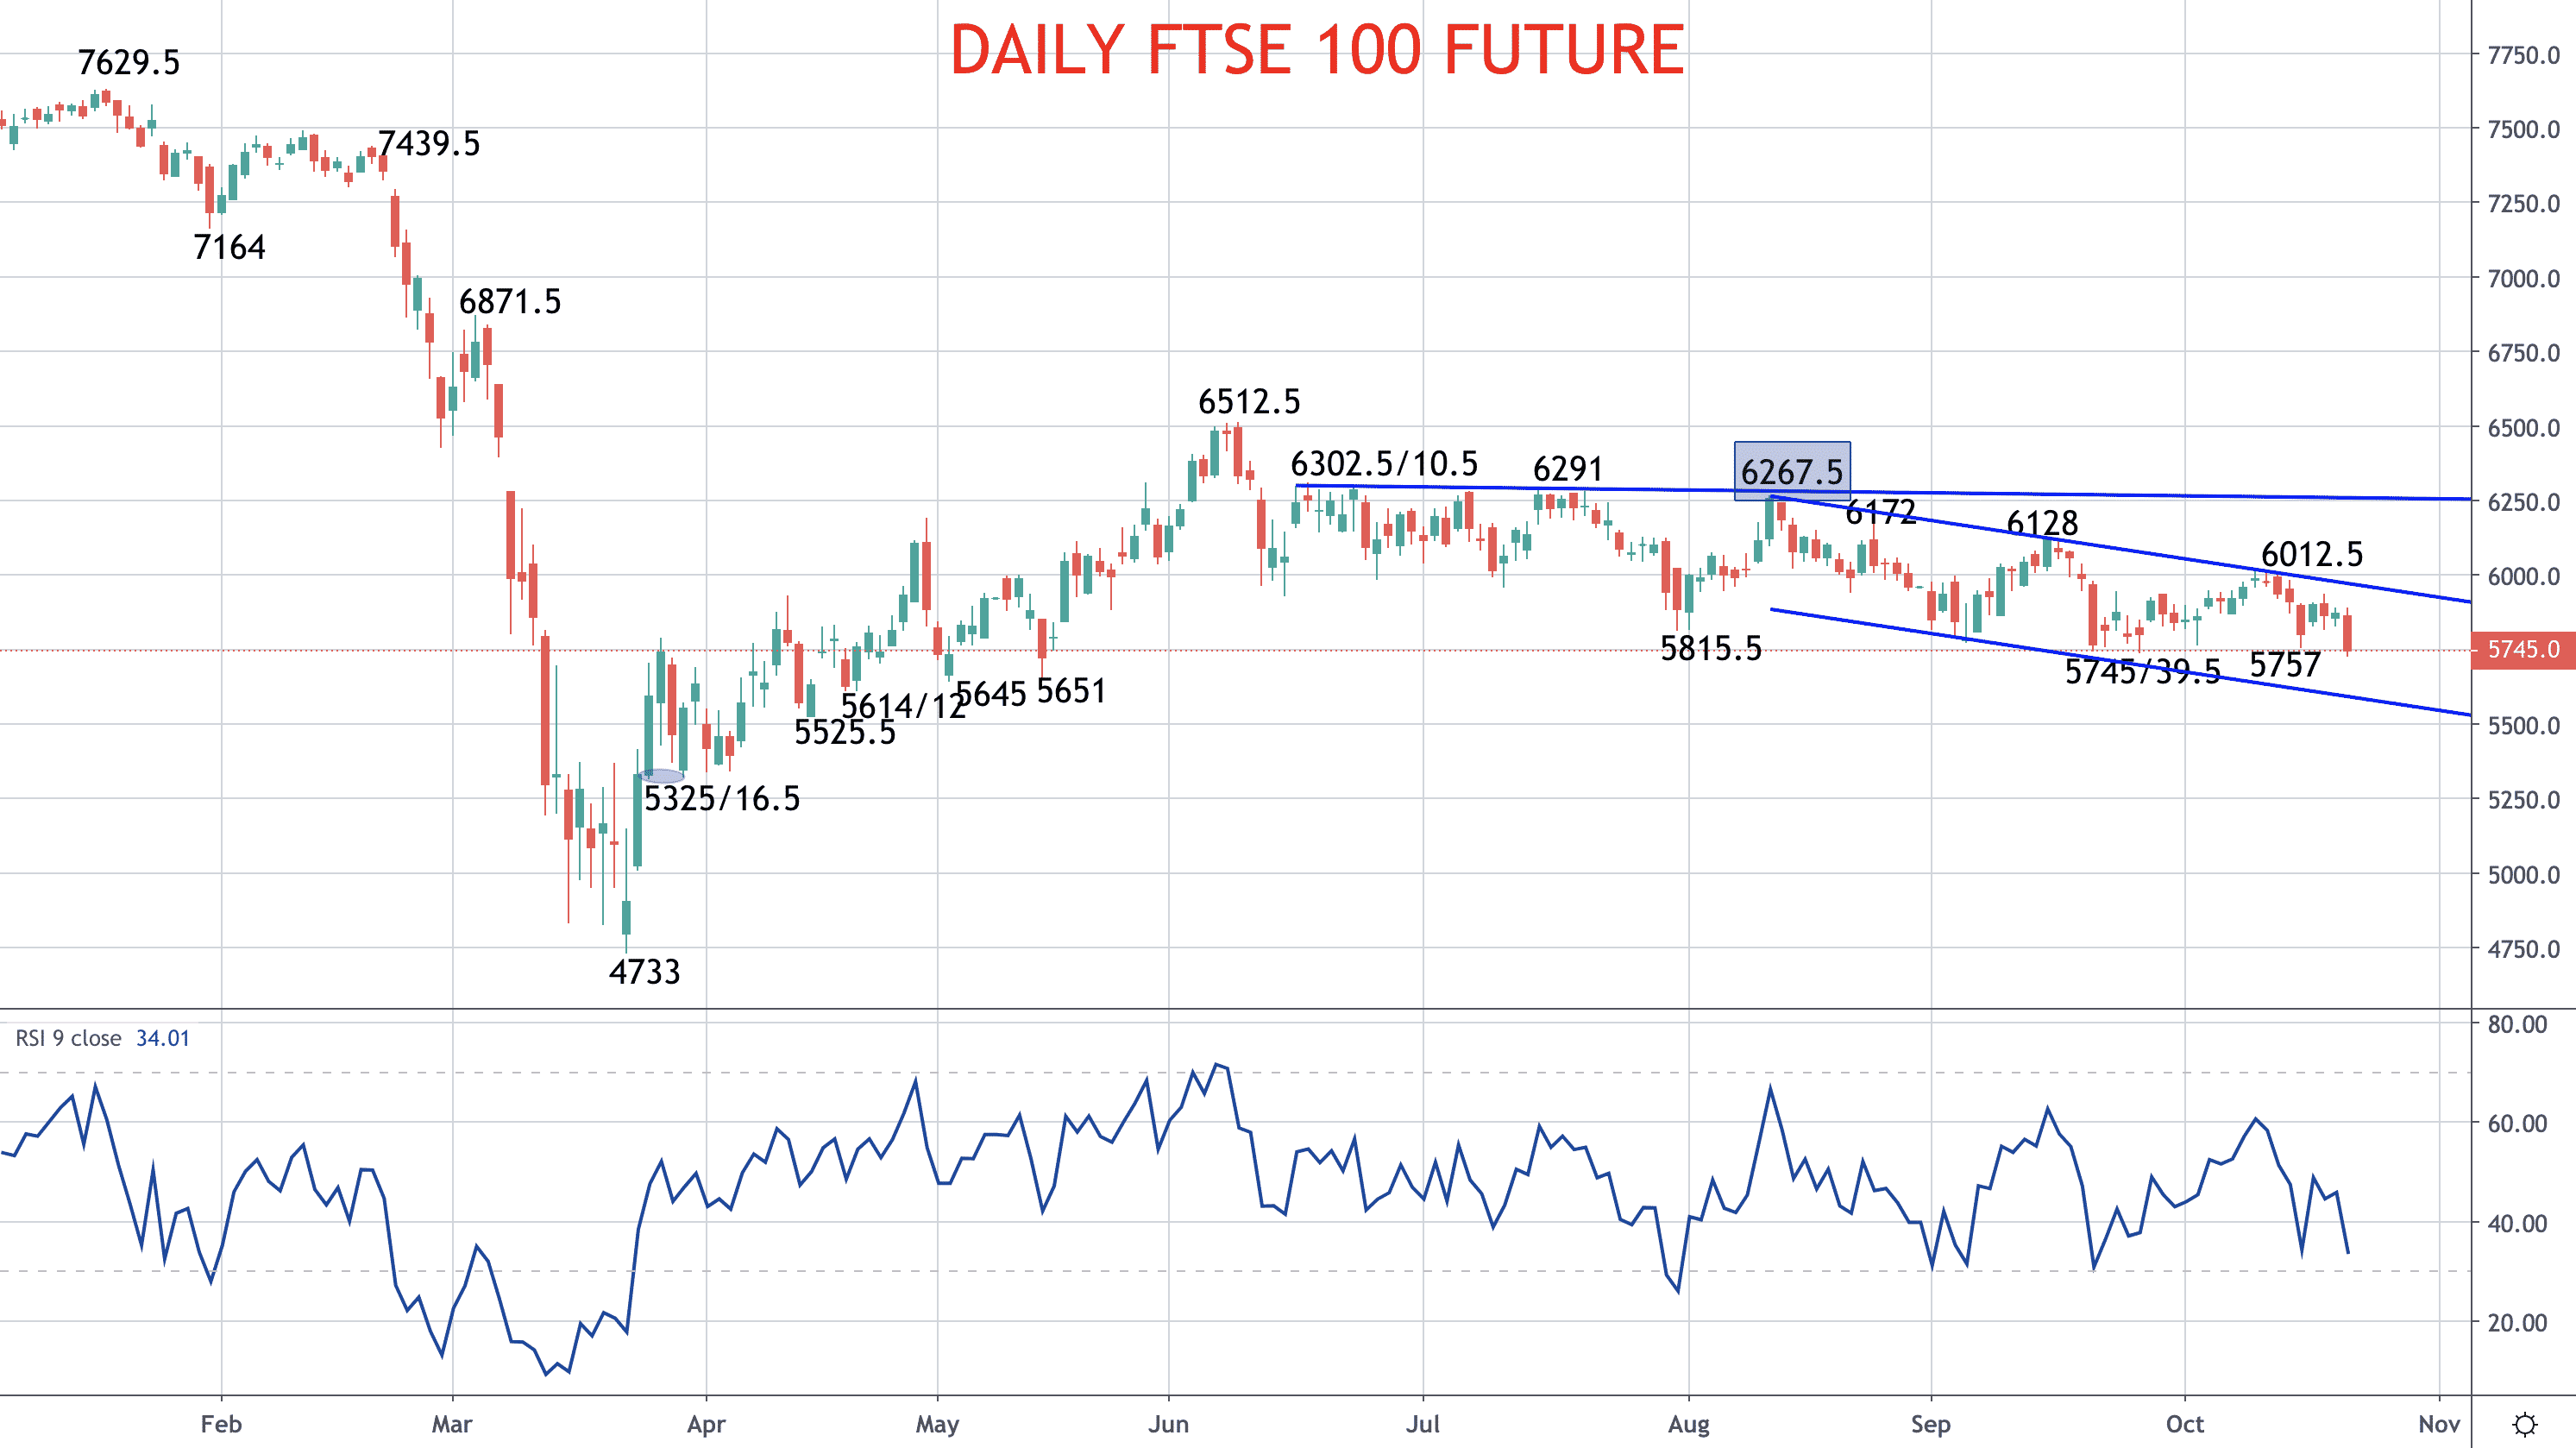 Stocks setting up for a plunge – S&P 500 and FTSE 100 forecast Image